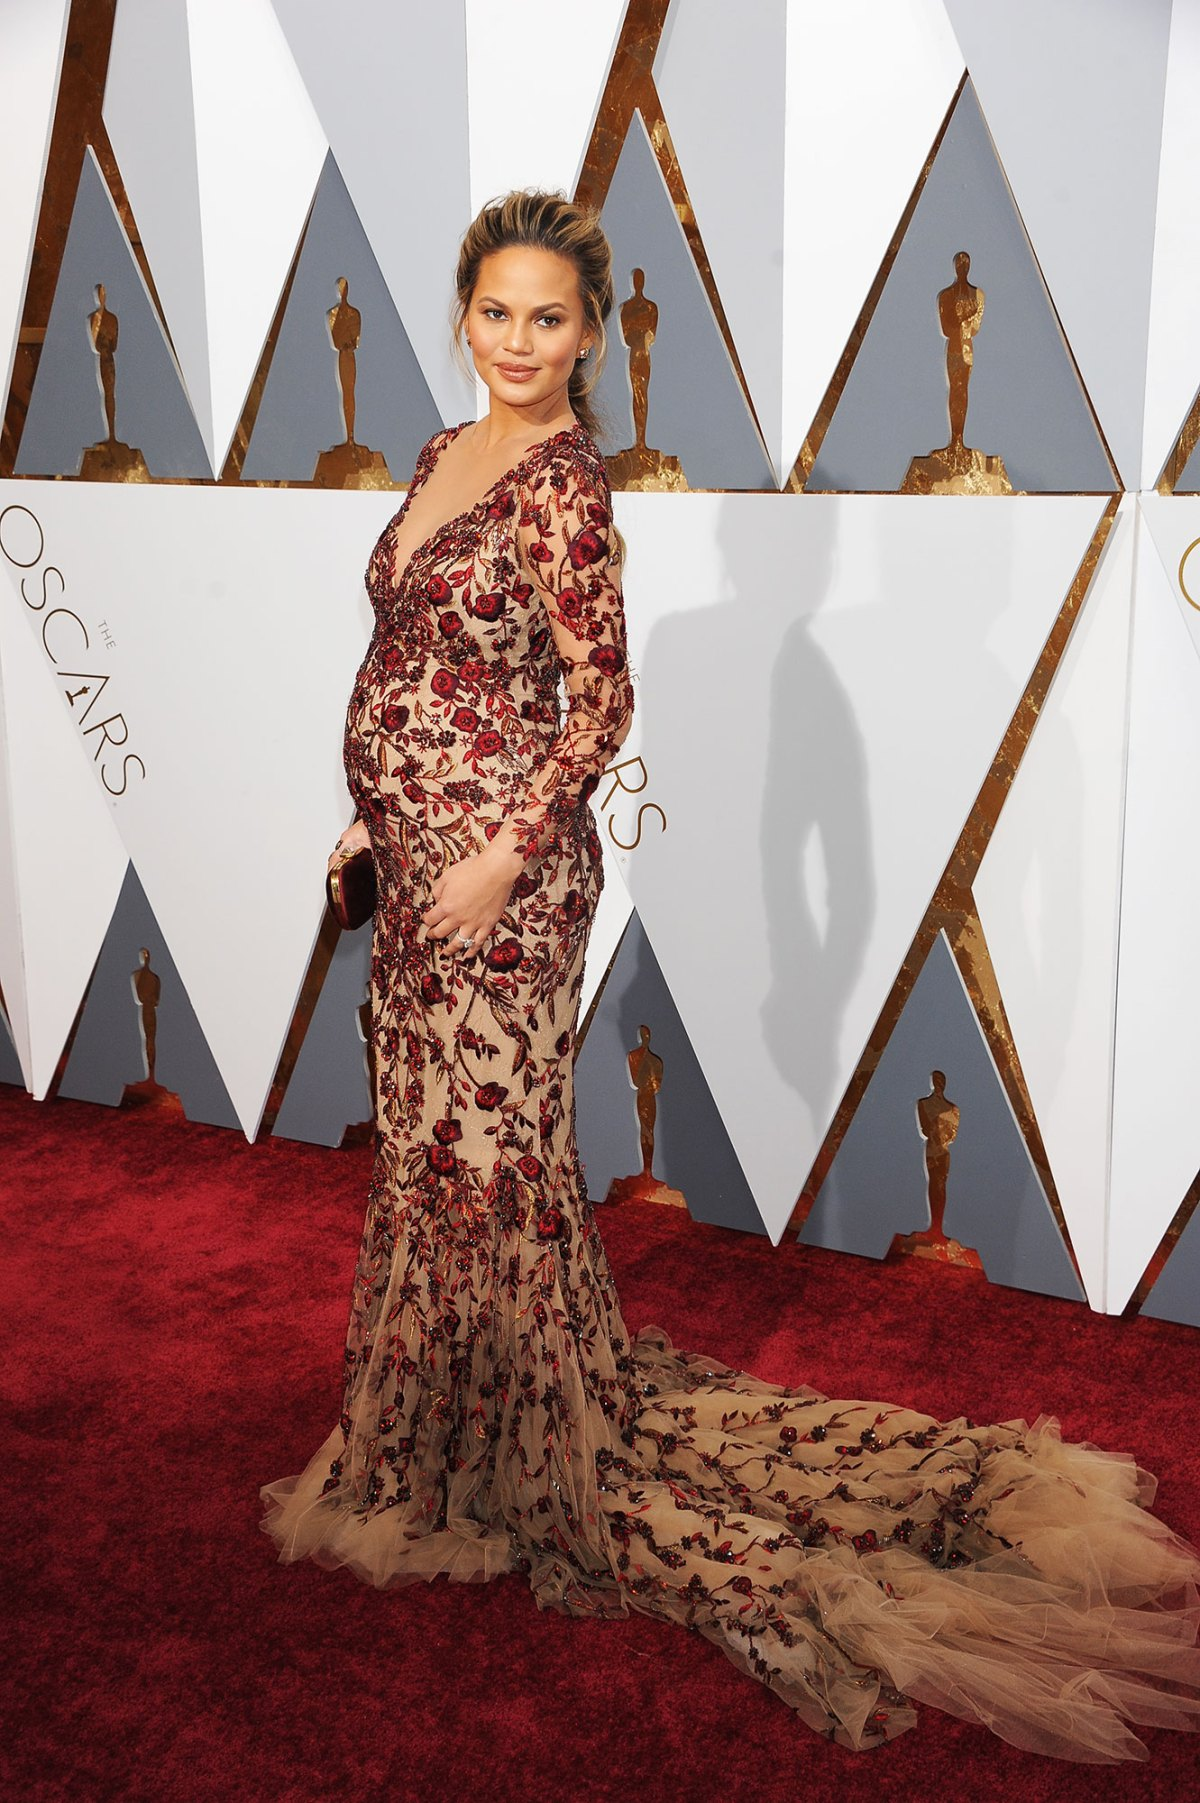 cd3bd7f02a8e0 Pregnant Celebrities Show Off Baby Bumps on the Oscars Red Carpet